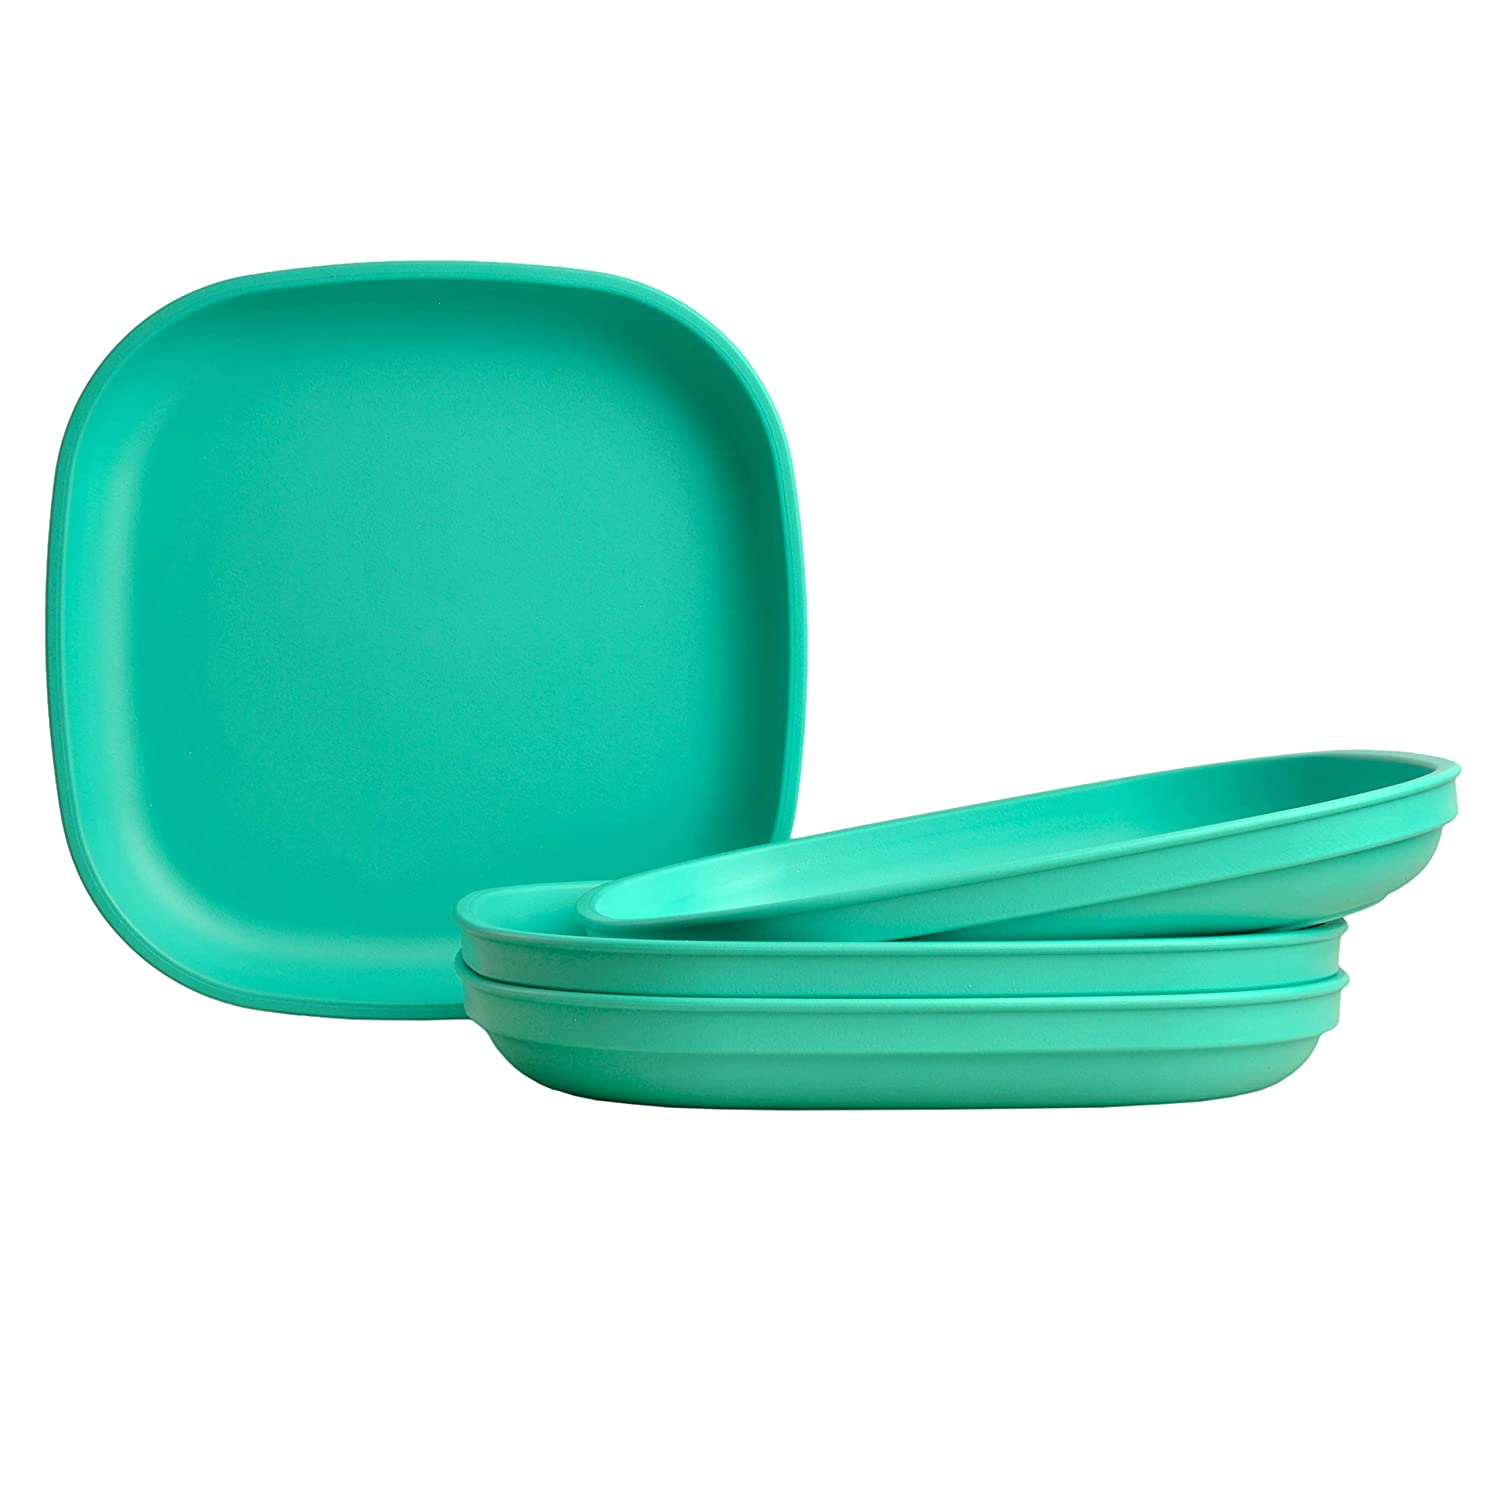 """Re-Play Made in USA Recycled Products, Set of 4 (9"""" Heavy Duty Dining Plate, Aqua) Great for Outdoor, Camping, Party, Tailgating or Everyday Dining"""